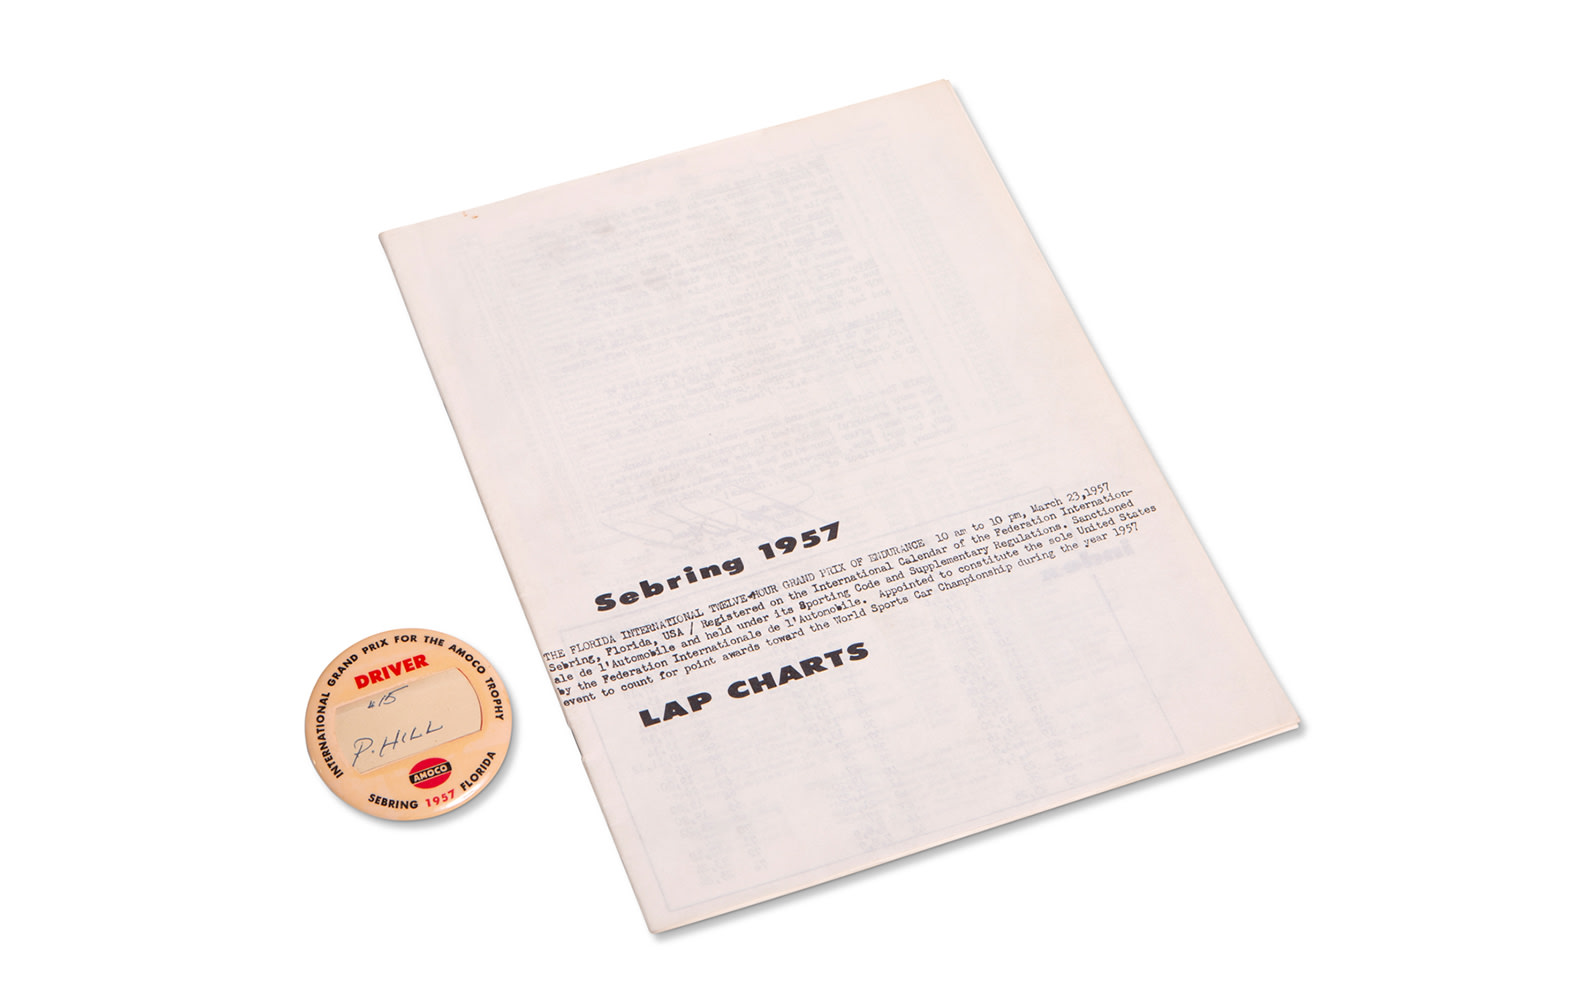 1957 12 Hours of Sebring Driver Pin and Official Lap Charts